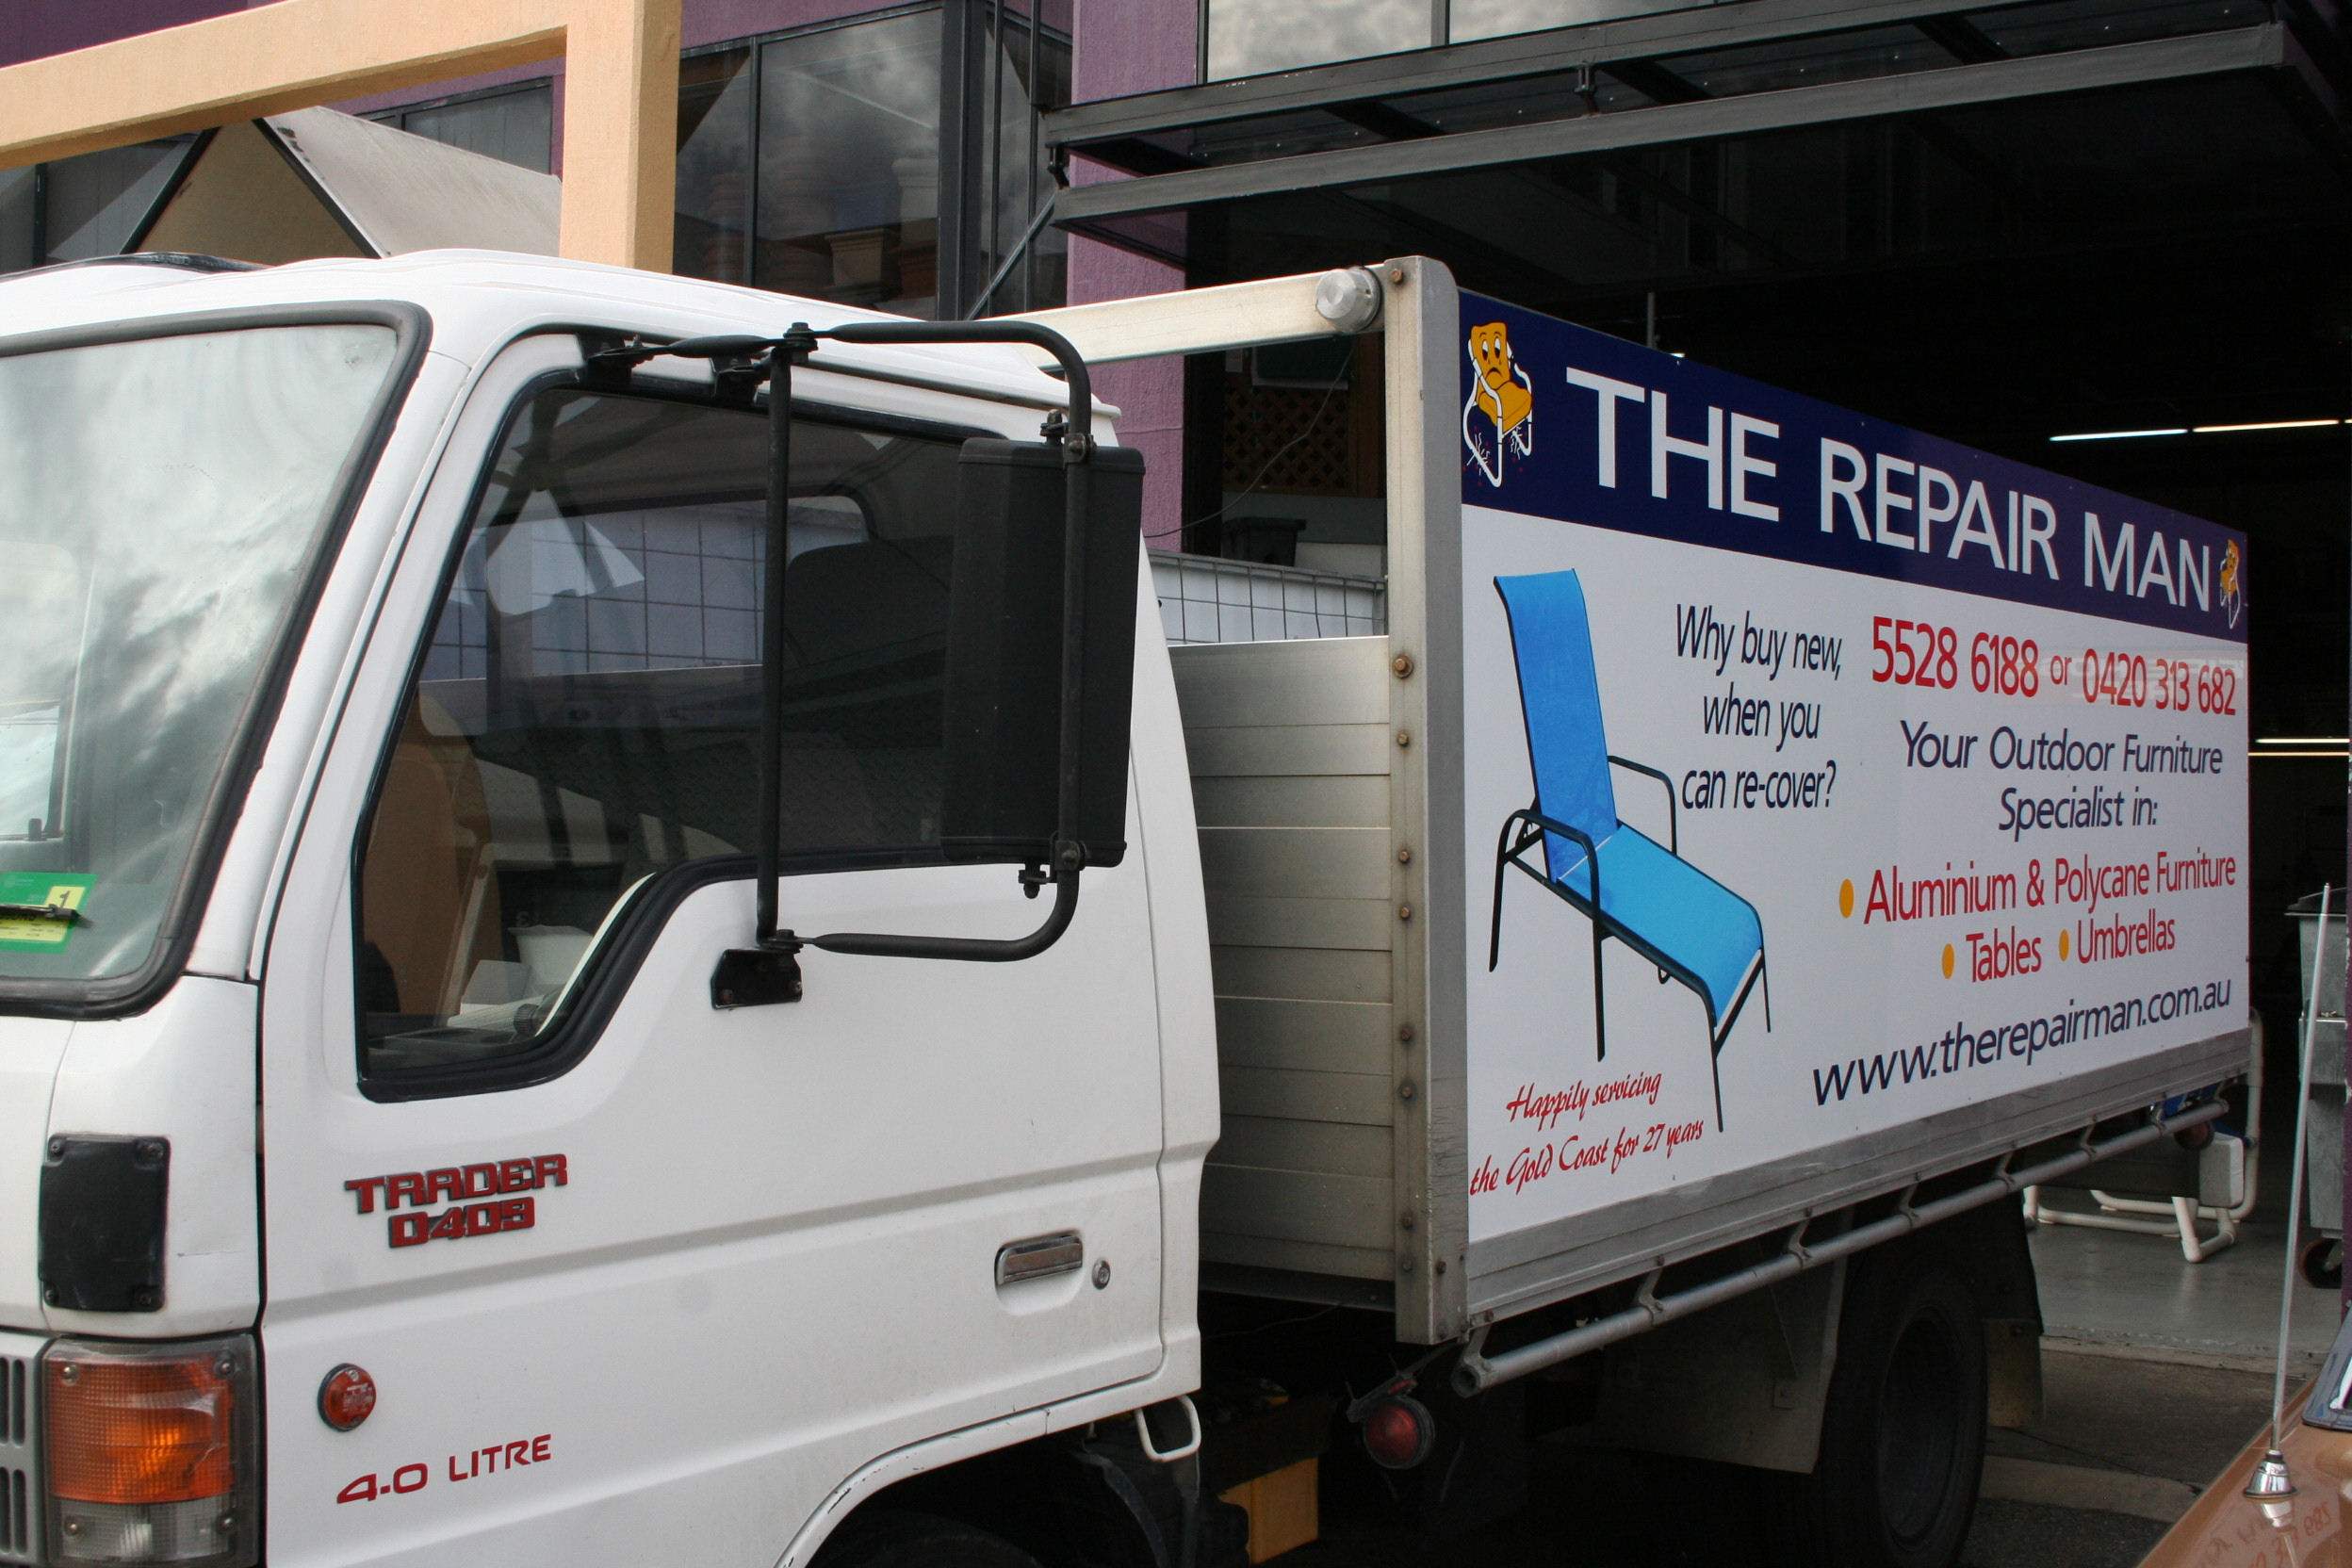 The Repair Man Truck